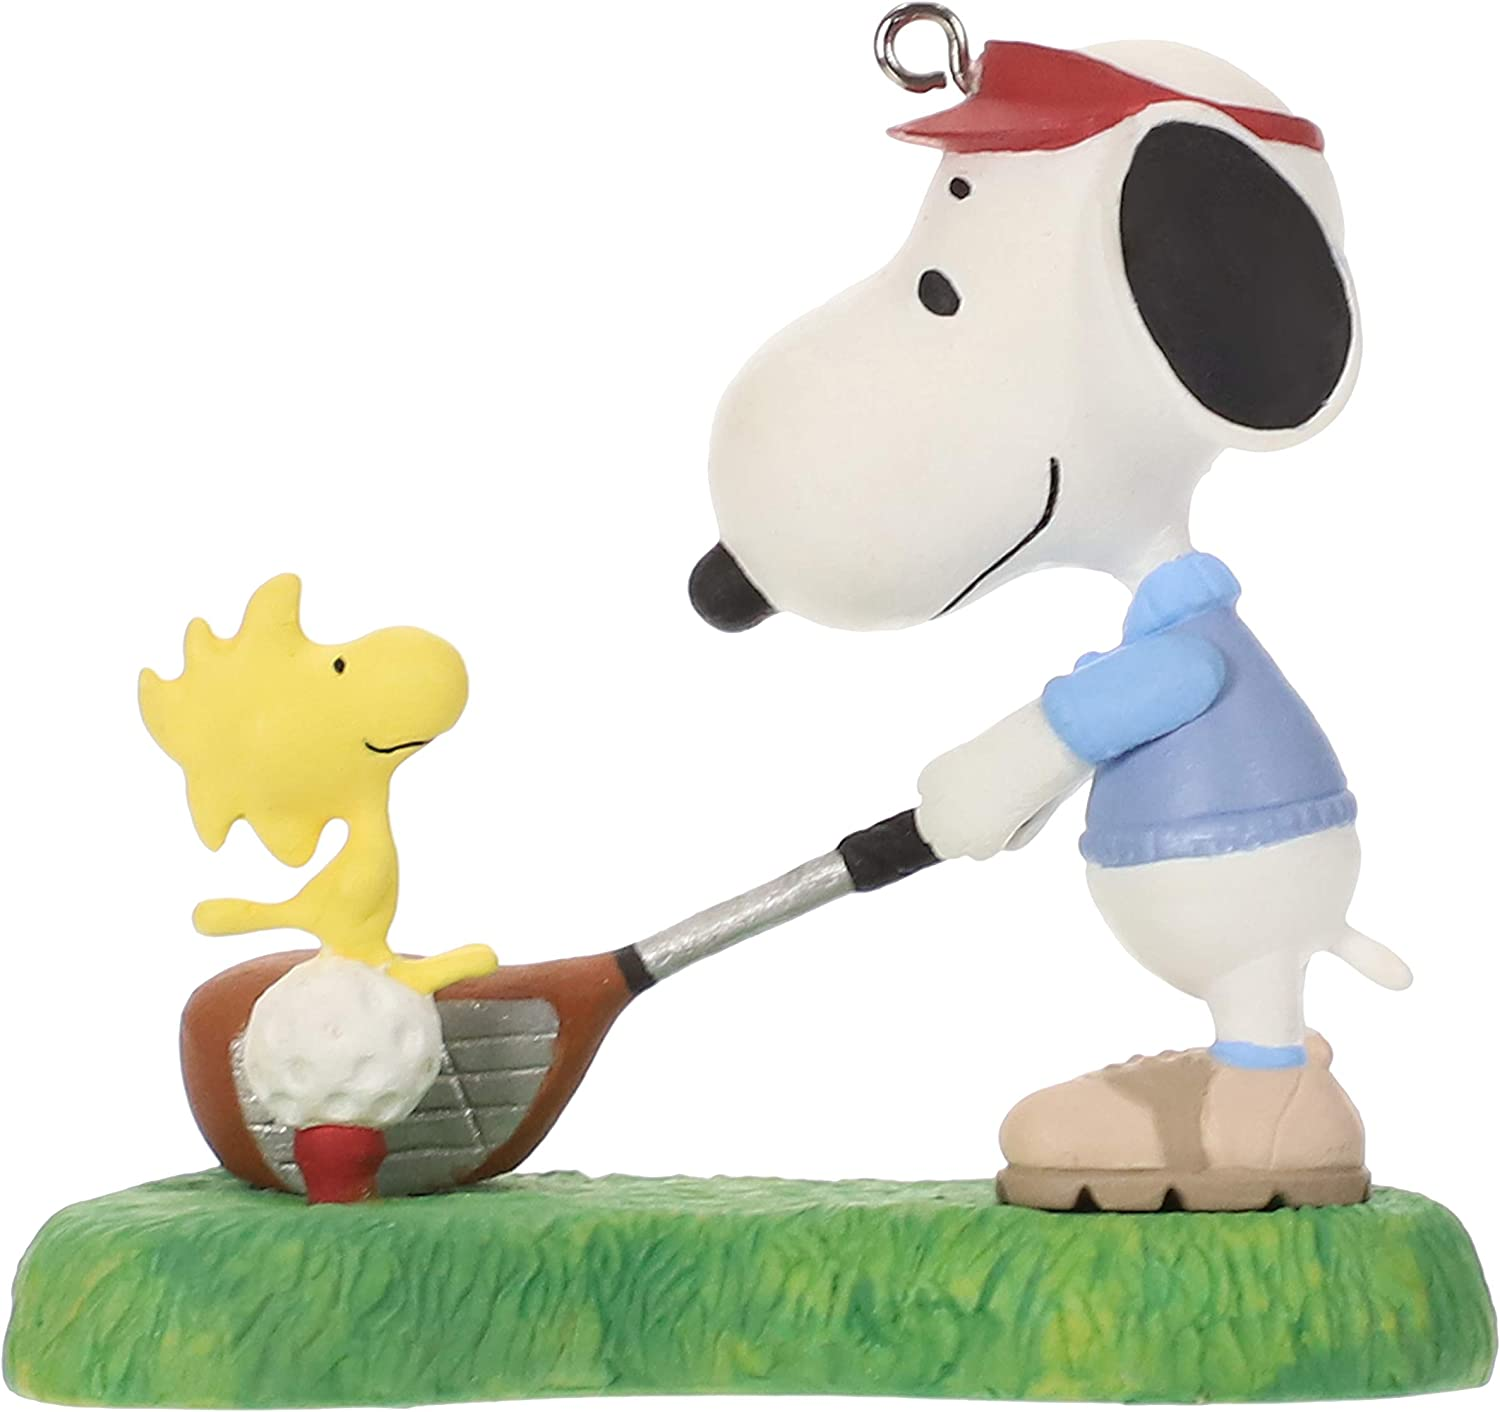 Hallmark Keepsake Christmas Ornament 2019 Year Dated Peanuts Spotlight, Snoopy Golfer